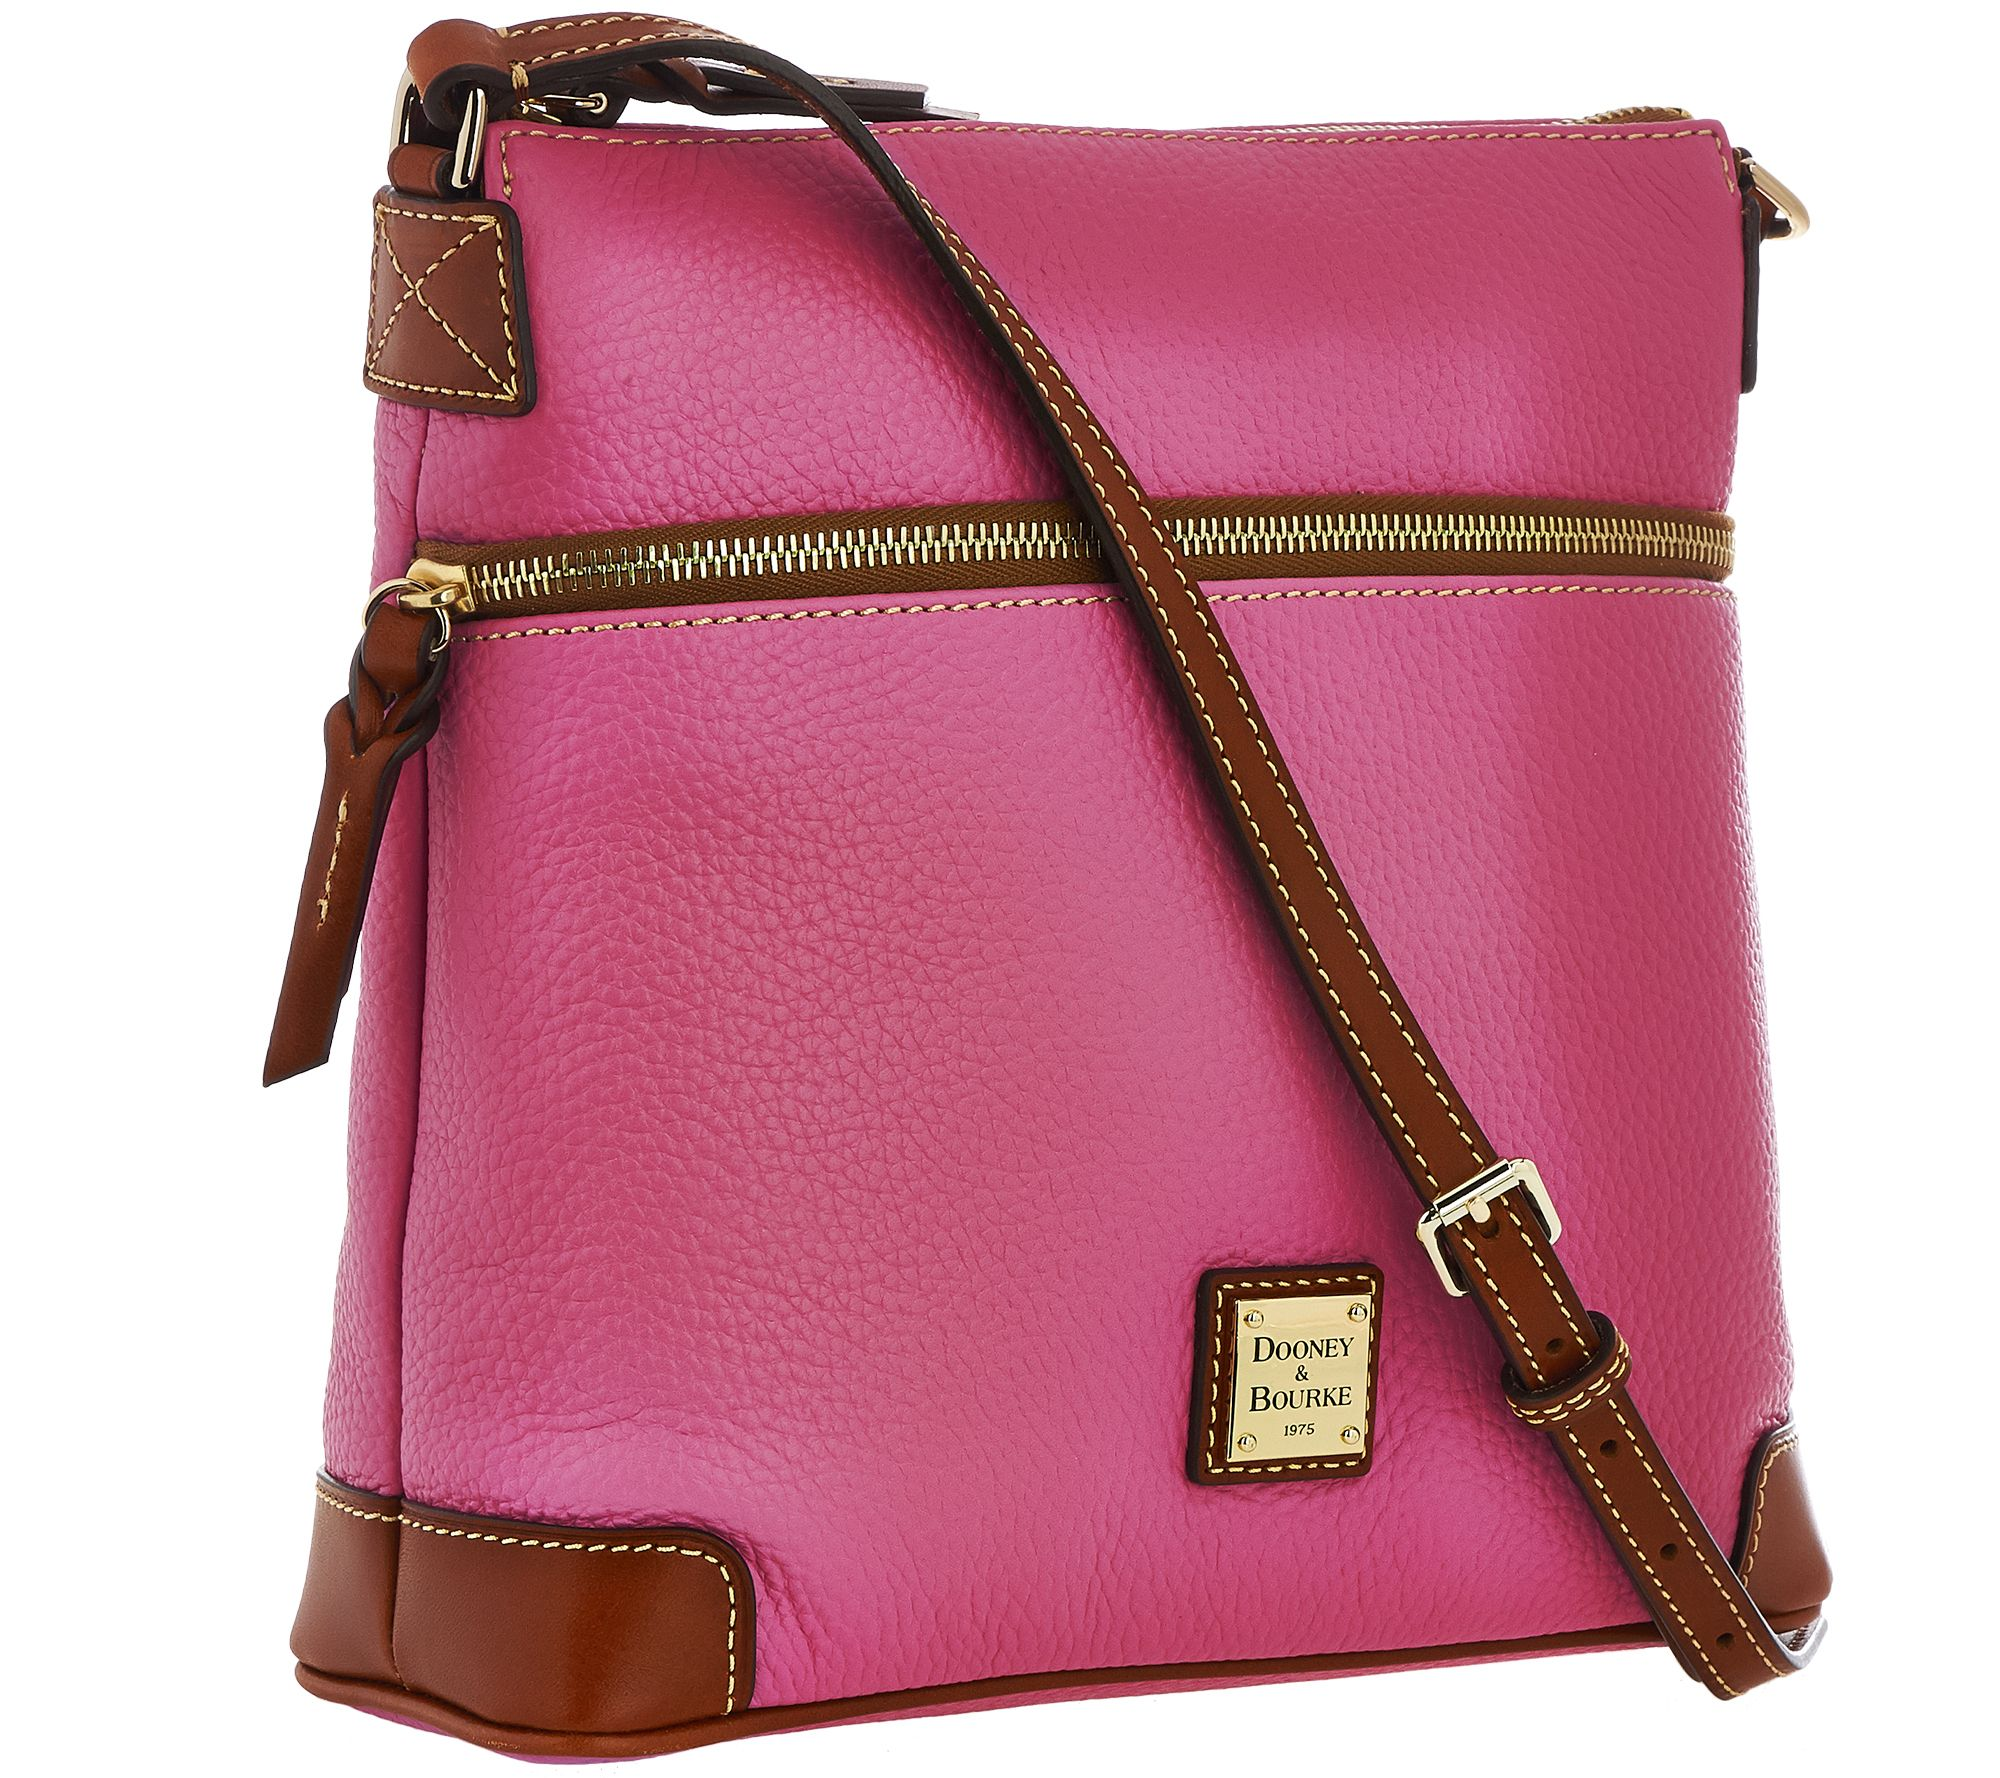 2faeaa2c5 Dooney & Bourke Pebble Leather Crossbody - Page 1 — QVC.com